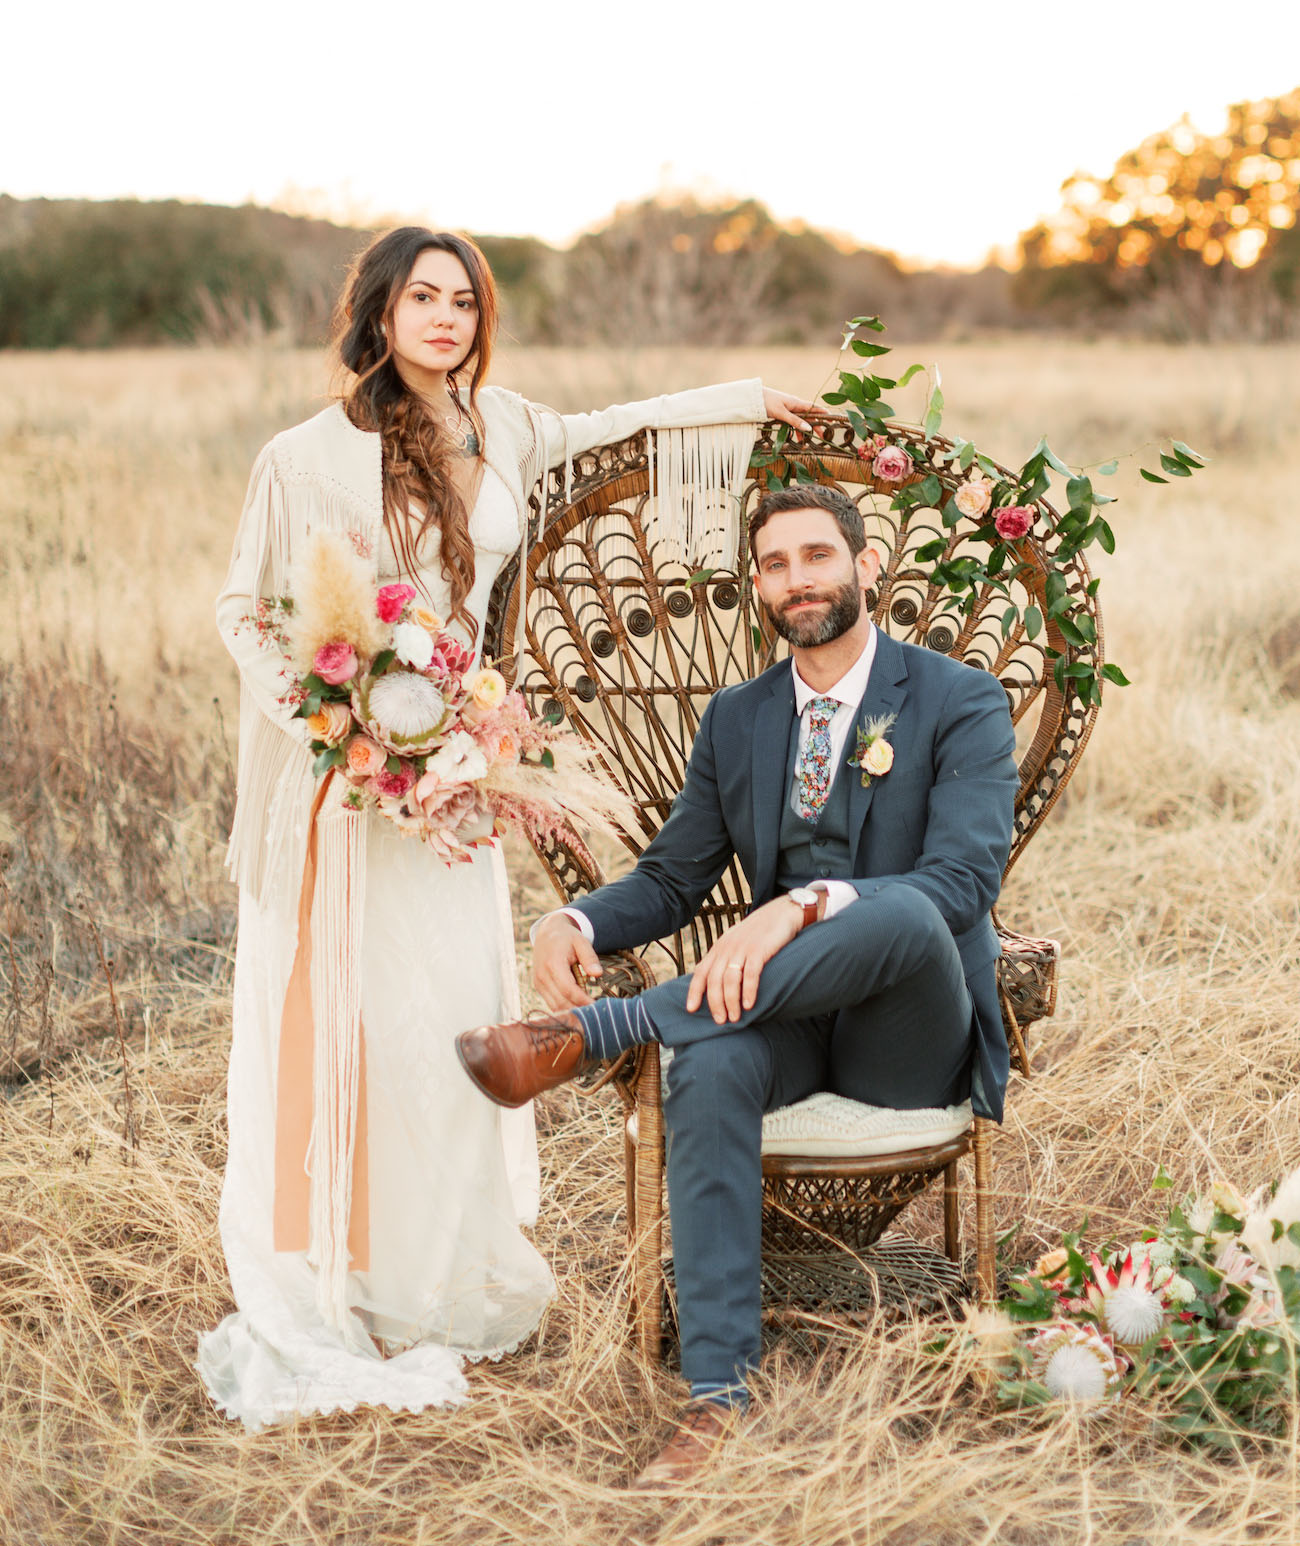 The Ultimate Bohemian Wedding at a Greenhouse